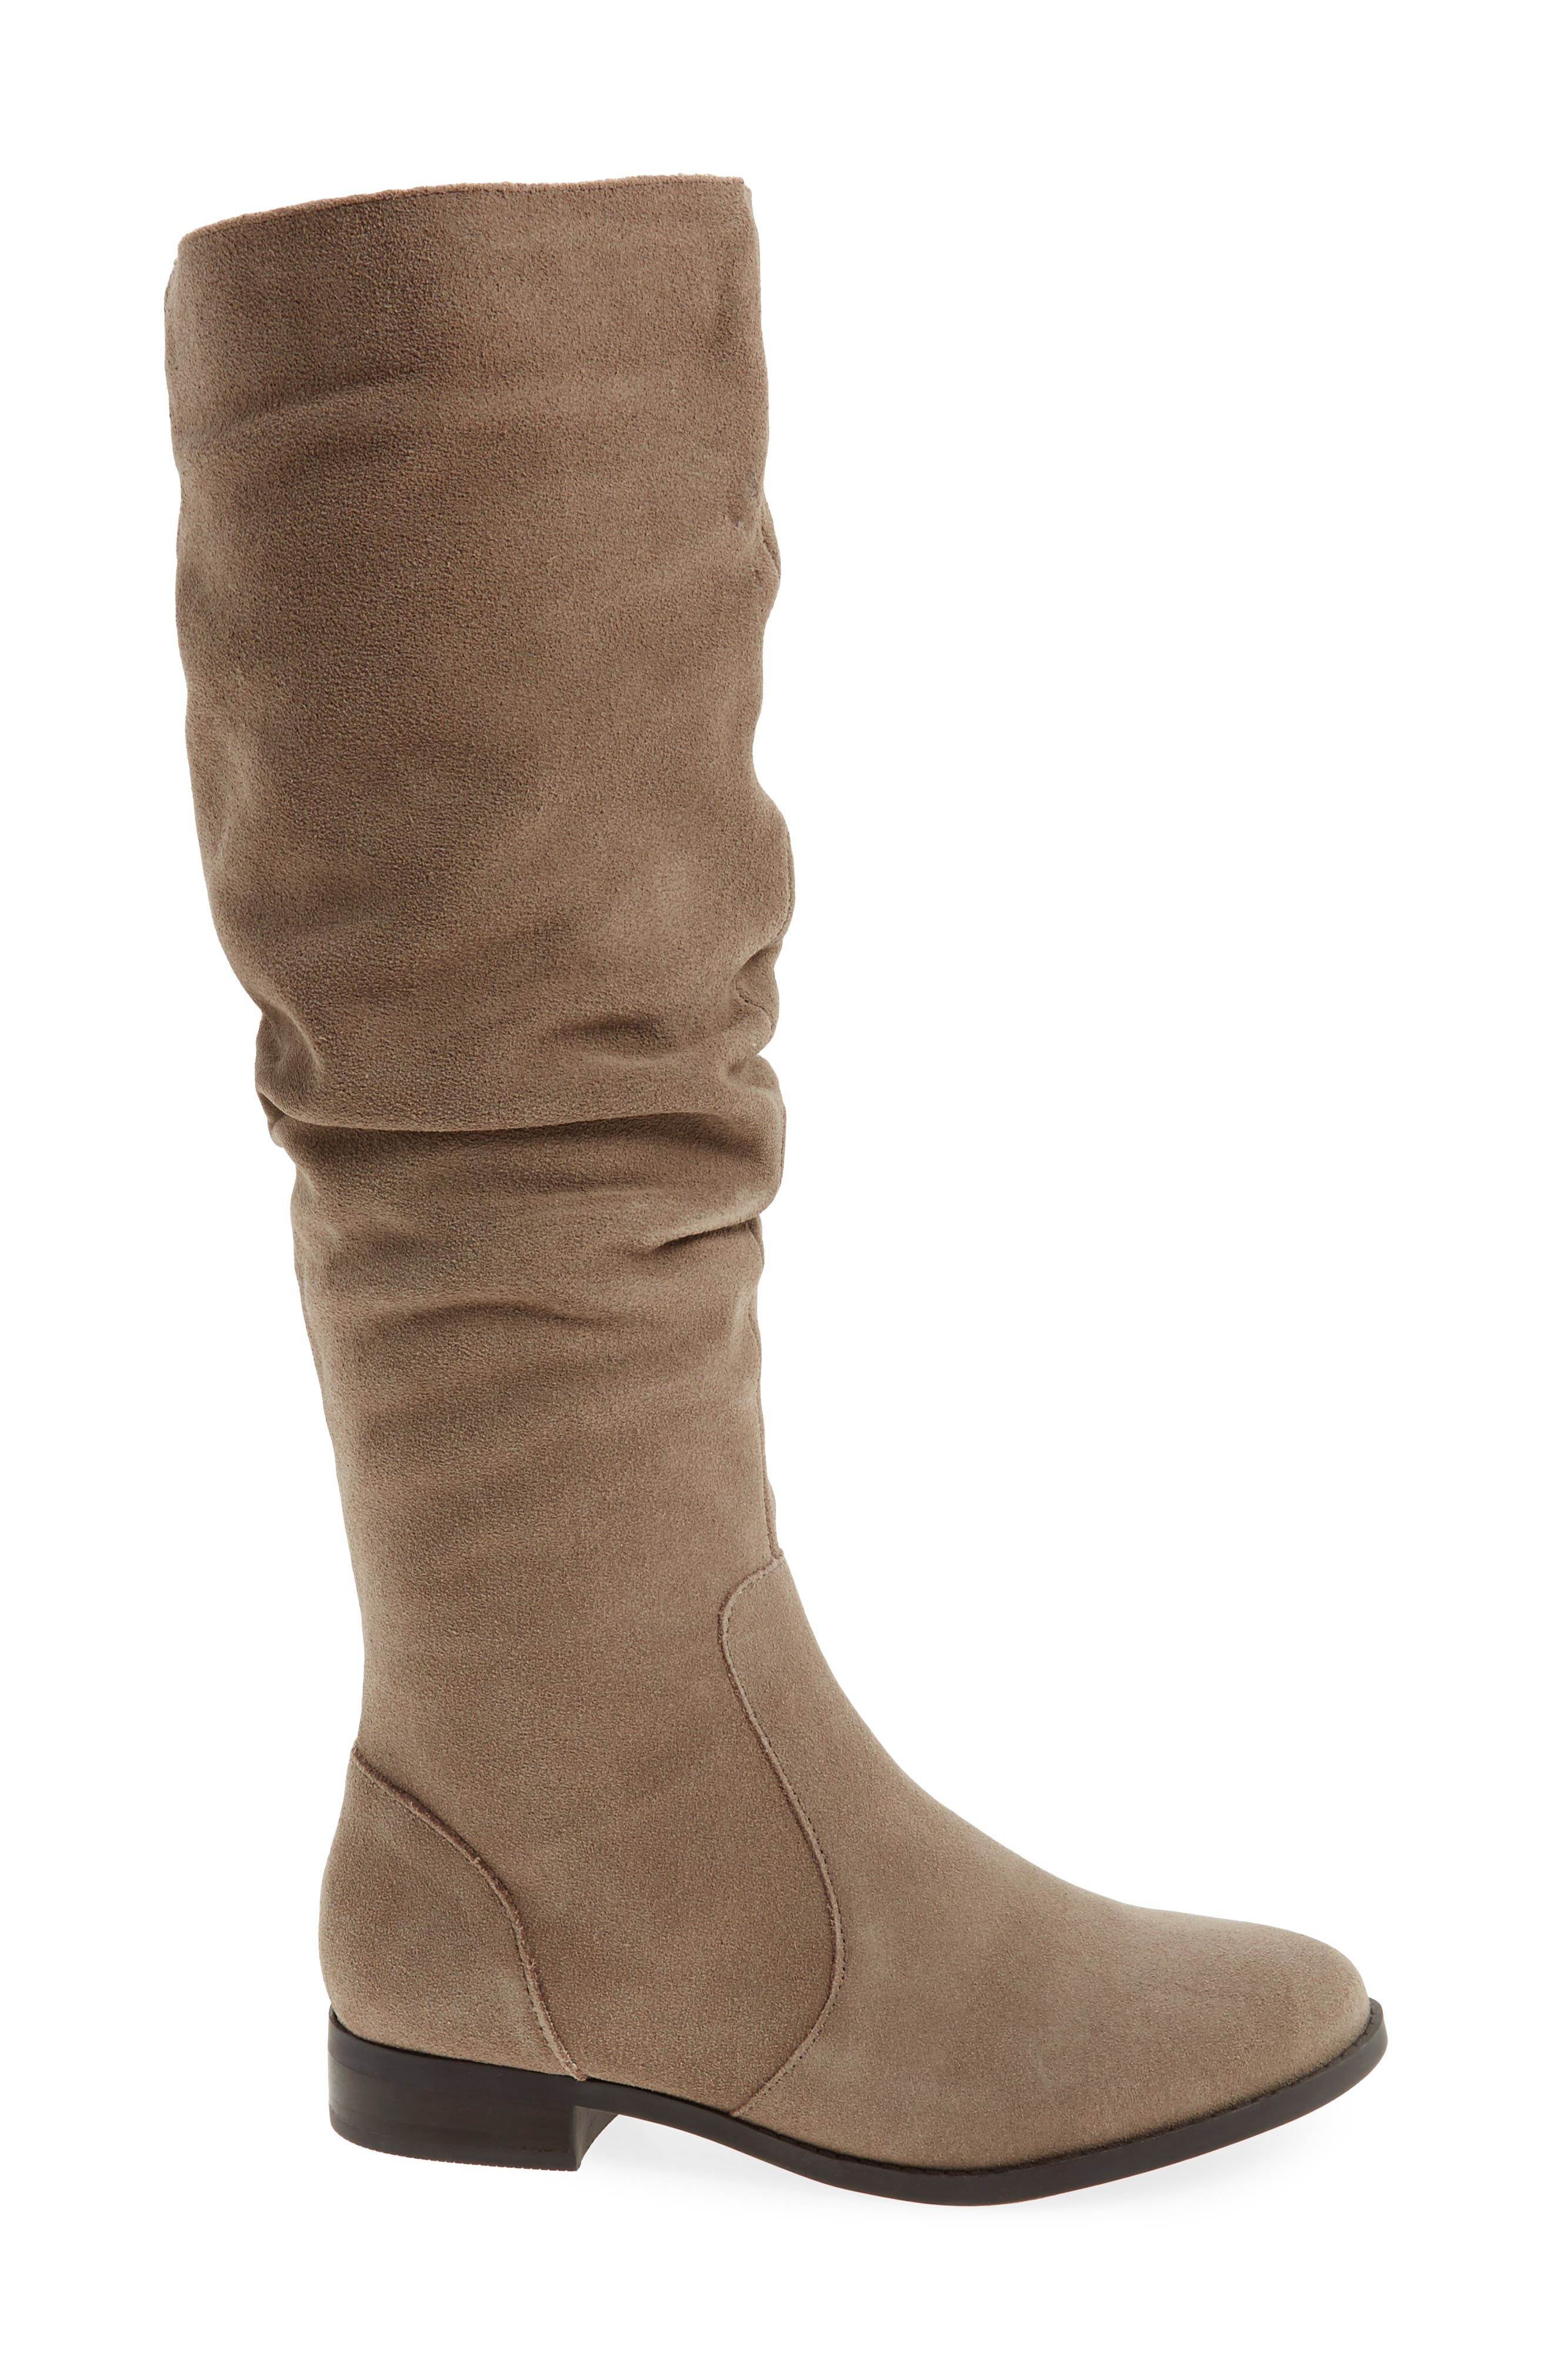 Alternate Image 3  - Steve Maddon Beacon Slouchy Knee-High Boot (Women) (Wide Calf)